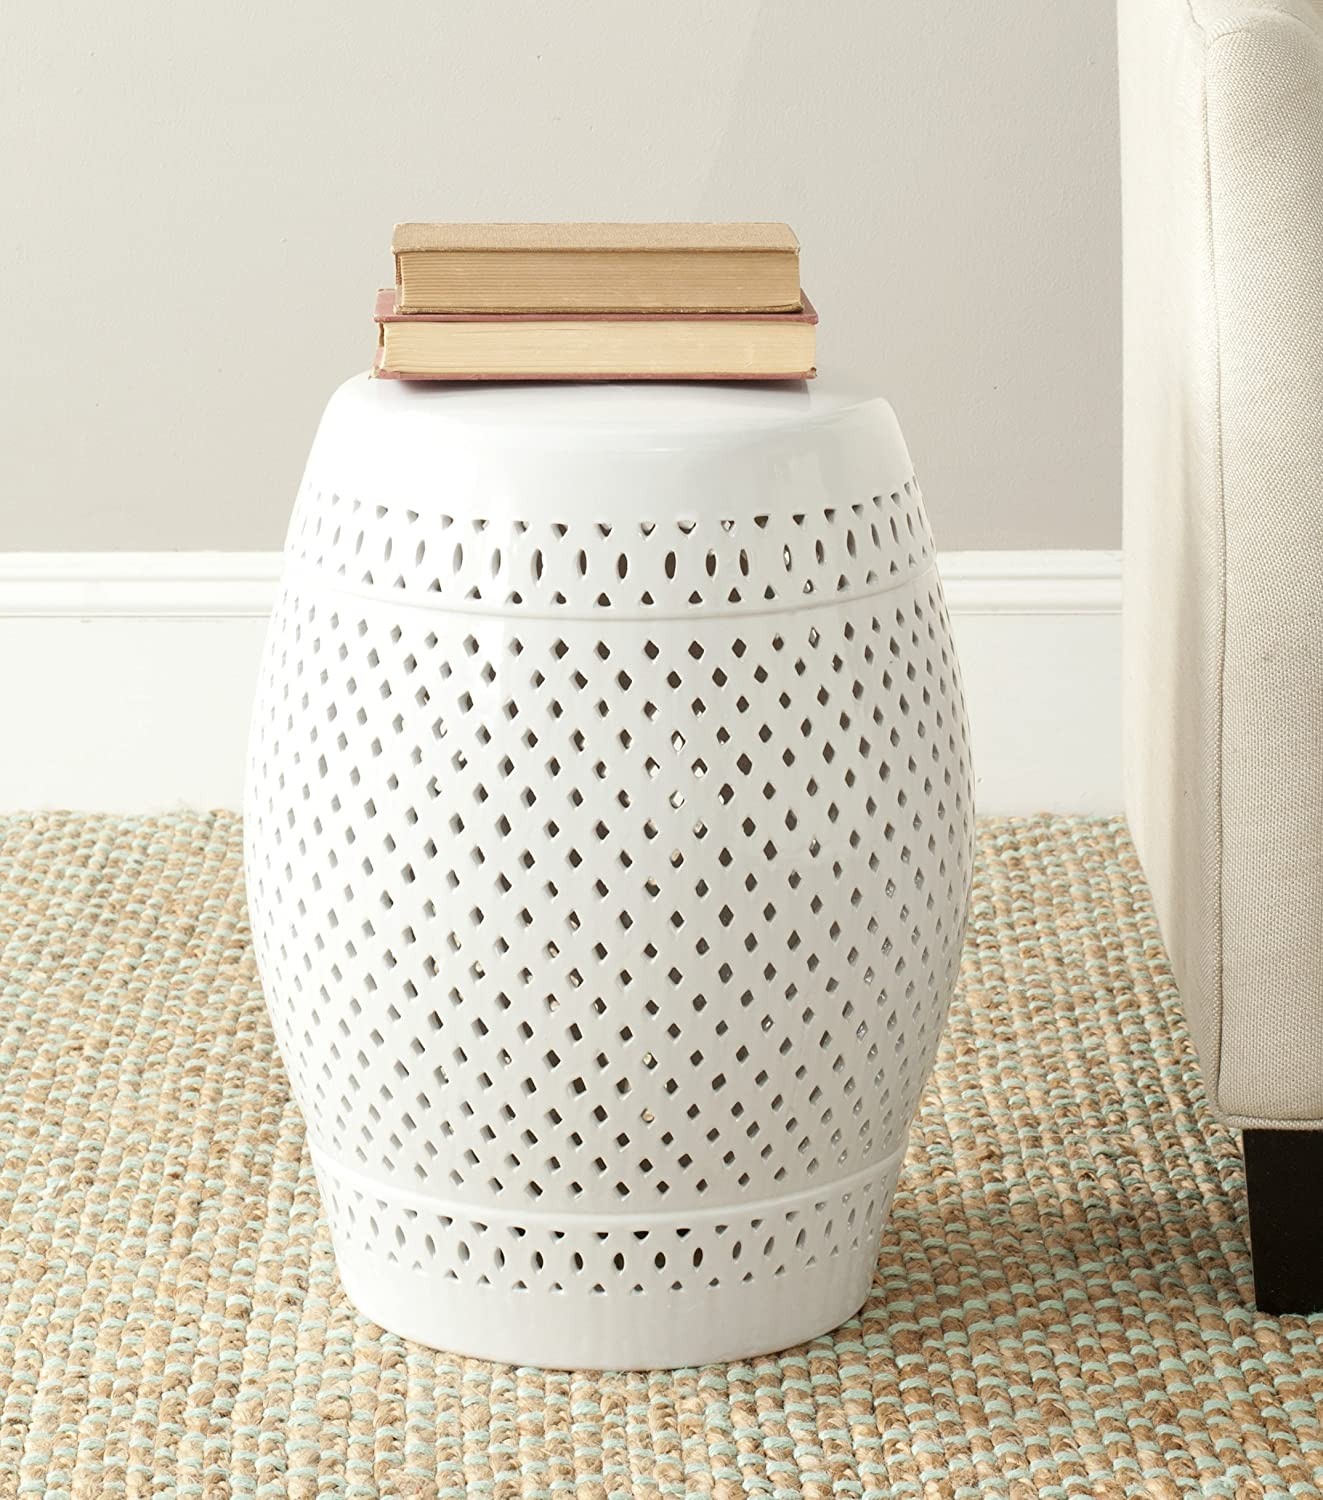 Safavieh Diamond Ceramic Decorative Garden Stool, White